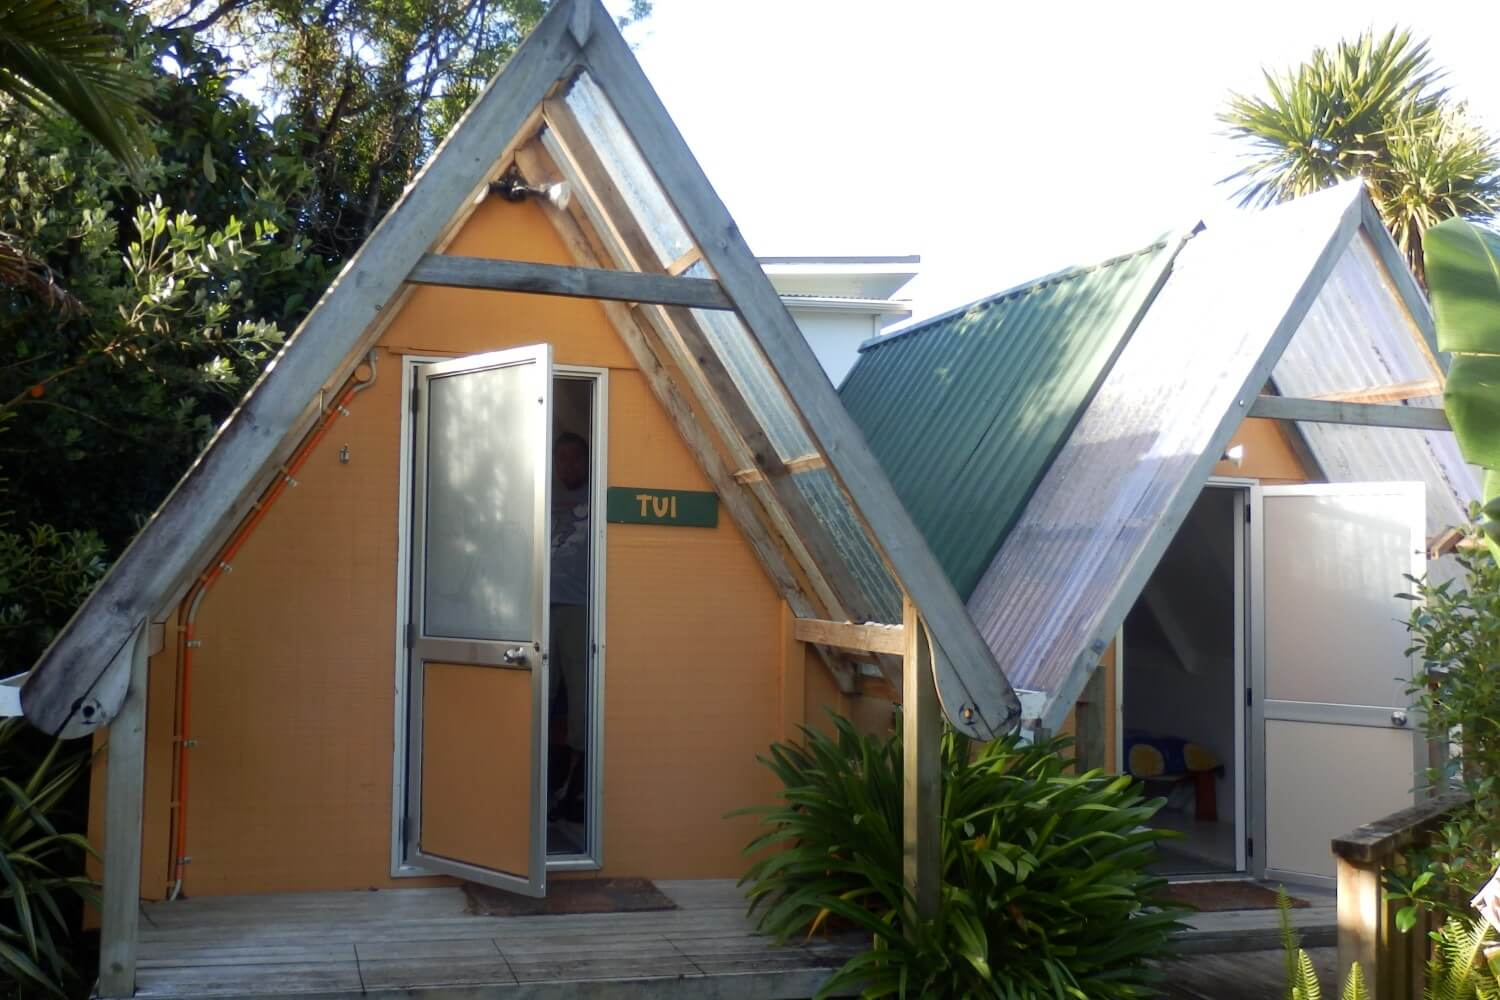 Accommodation in Paihia: Pickled Parrot